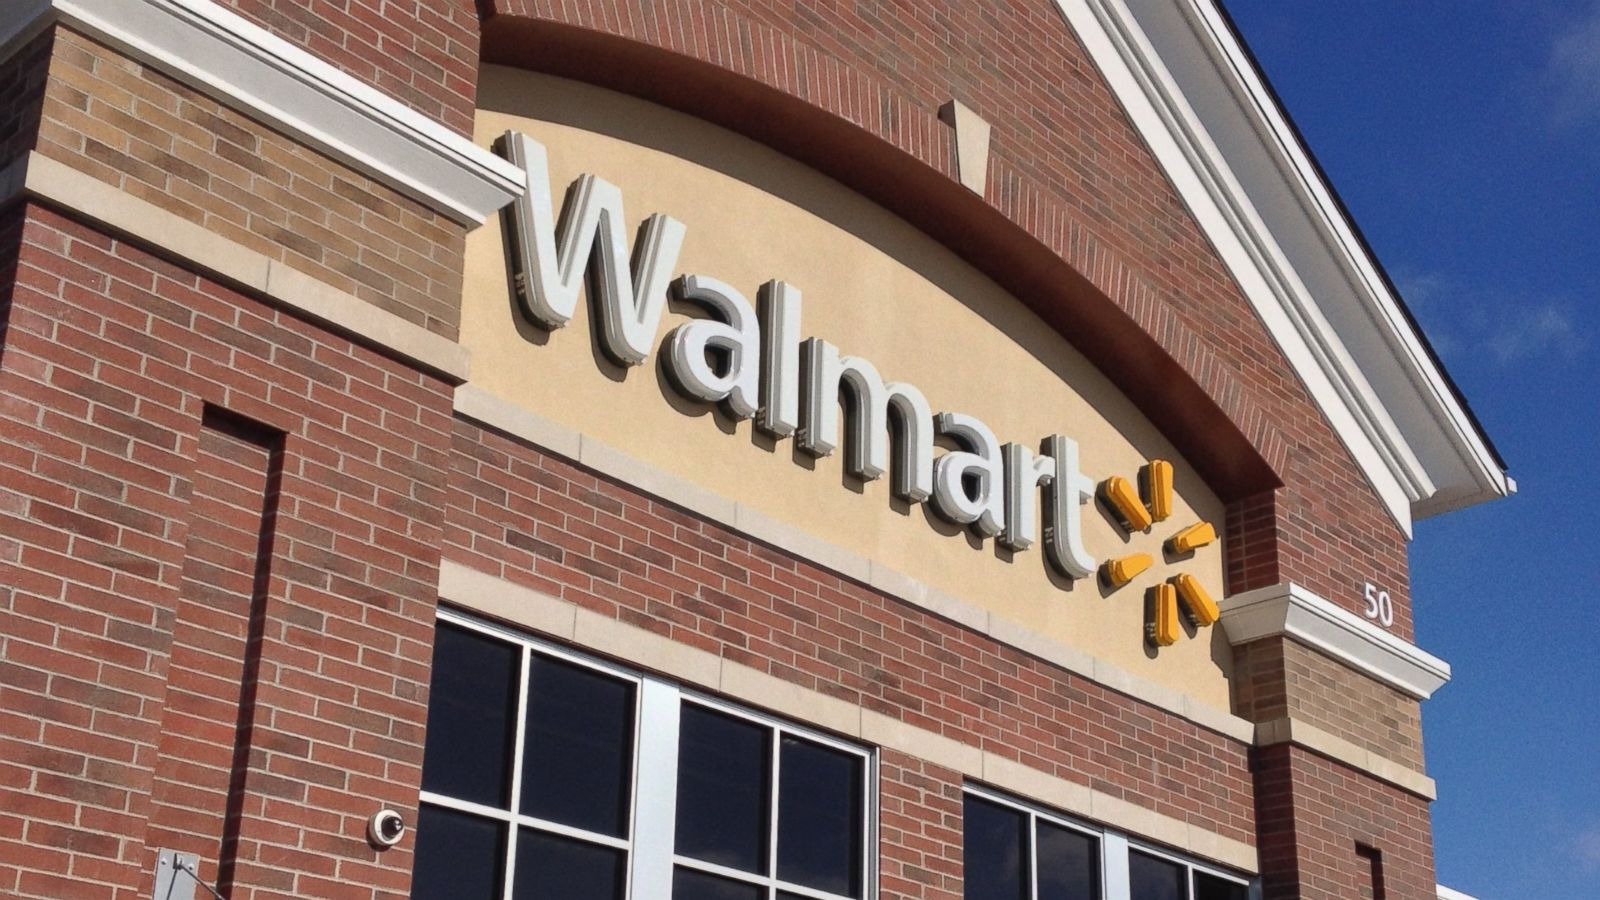 christmas in august walmart to launch layaway plan abc news - When Does Walmart Christmas Layaway Start